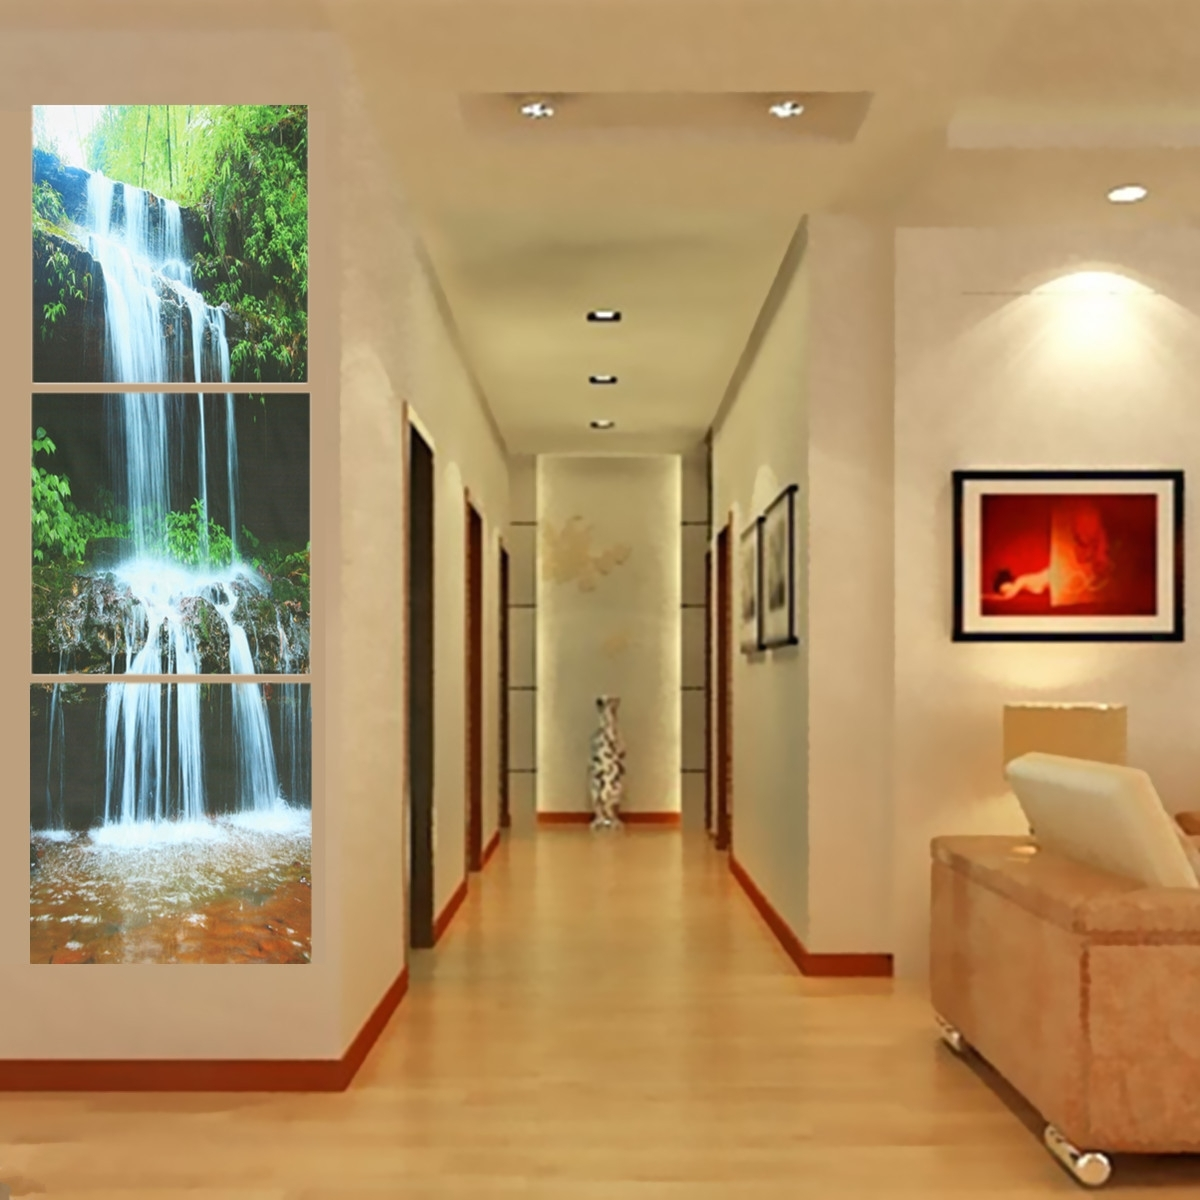 3 Cascade Large Waterfall Framed Print Painting Canvas Wall Art Within Most Recent Large Framed Canvas Wall Art (View 11 of 20)